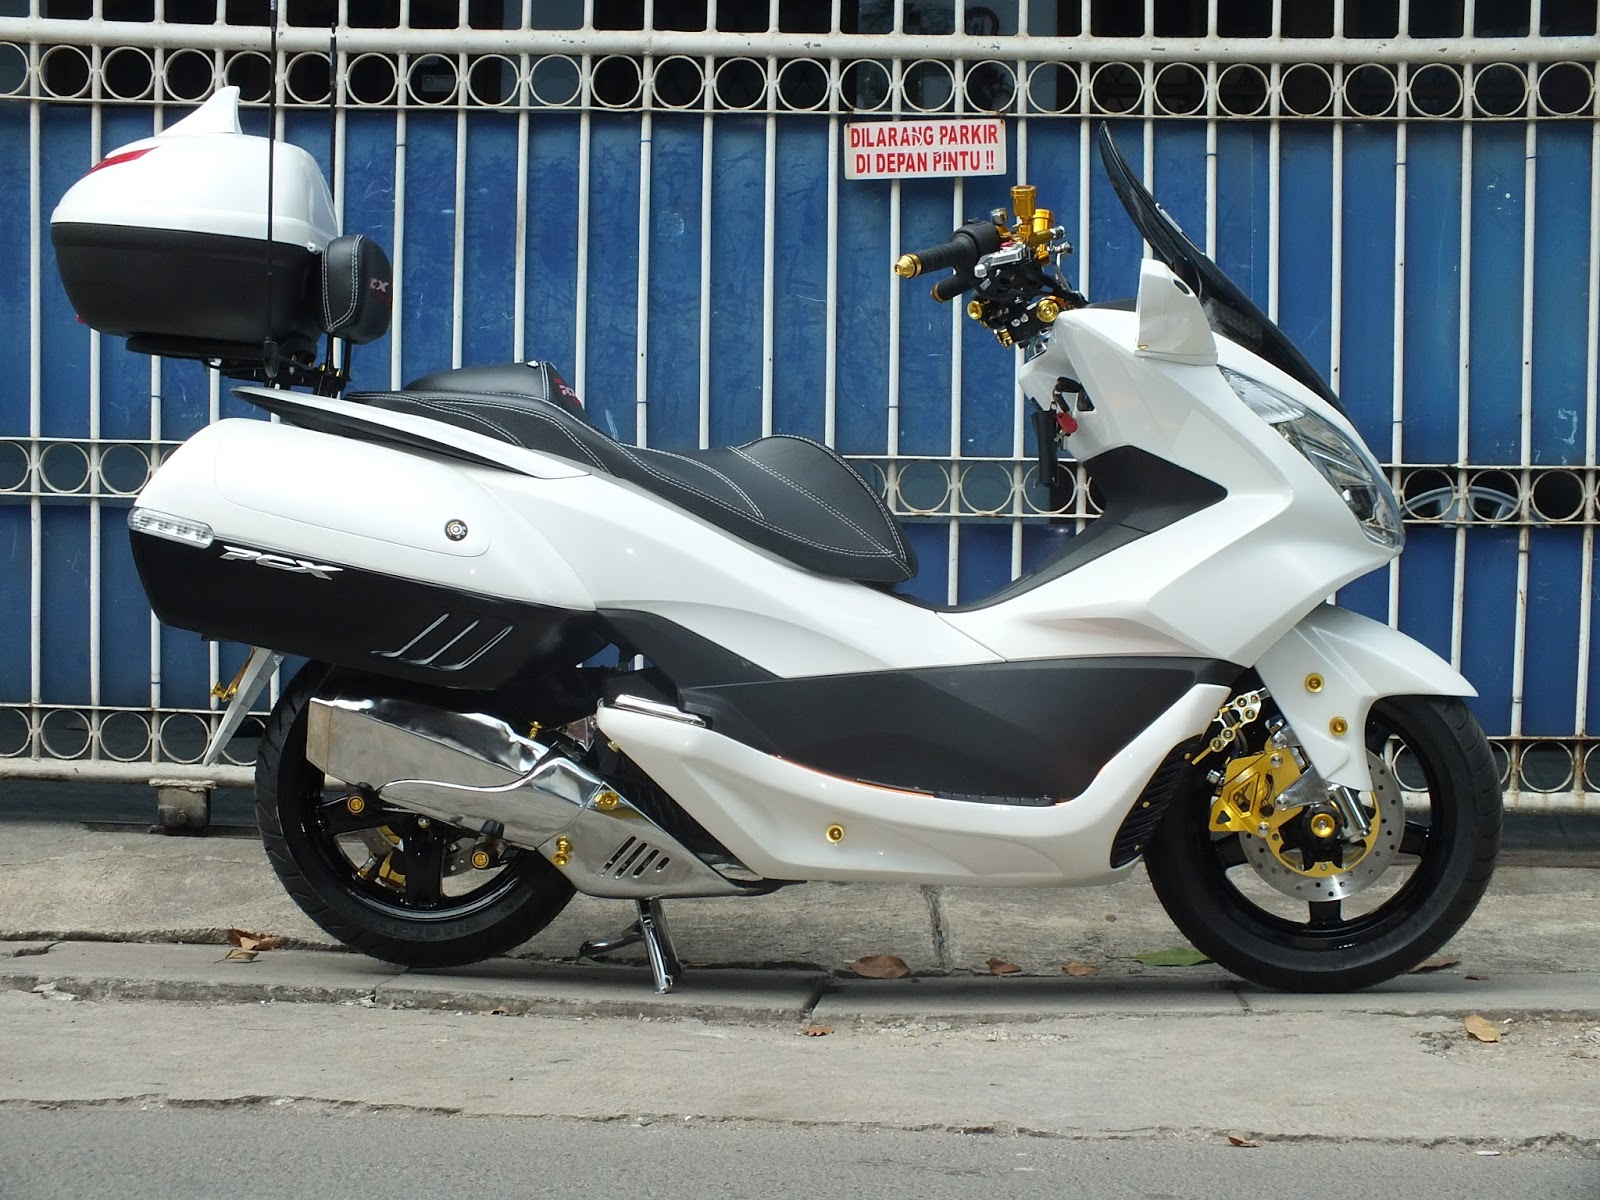 Ngecat MOTOR Honda Pcx All New Modifikasi POLICE STYLE Pesanan Mr